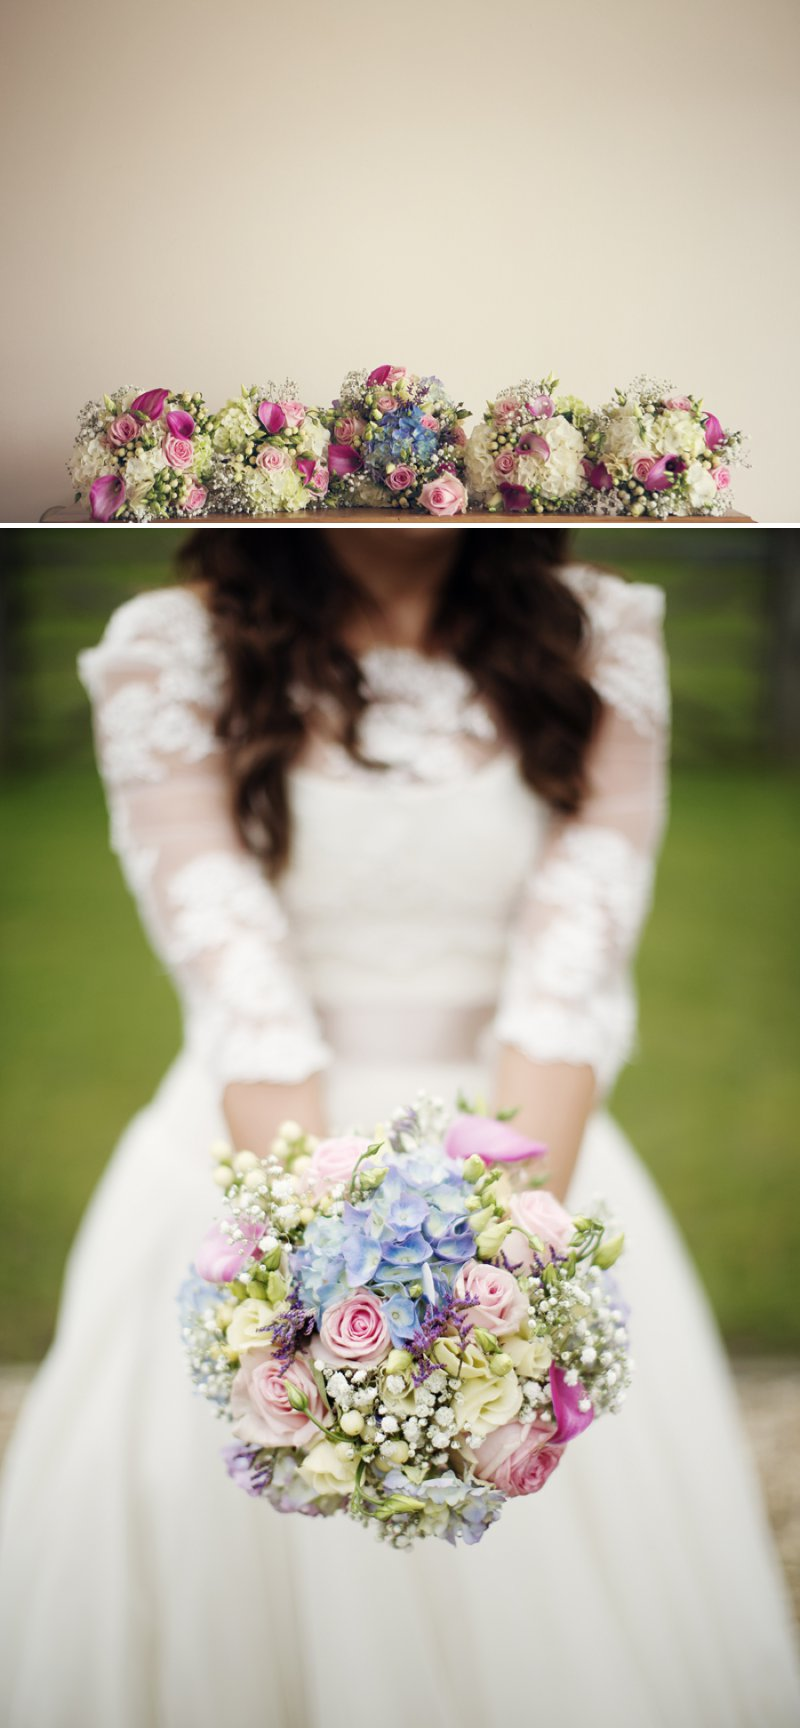 Rustic Wedding At Hyde Barn In Stow On The Wold With A Pale Pink Colour Scheme And Bride In Samantha By Sassi Holford With Bridesmaids In Pale Pink Twobirds Dresses With Groom In Navy Reiss Suit 4